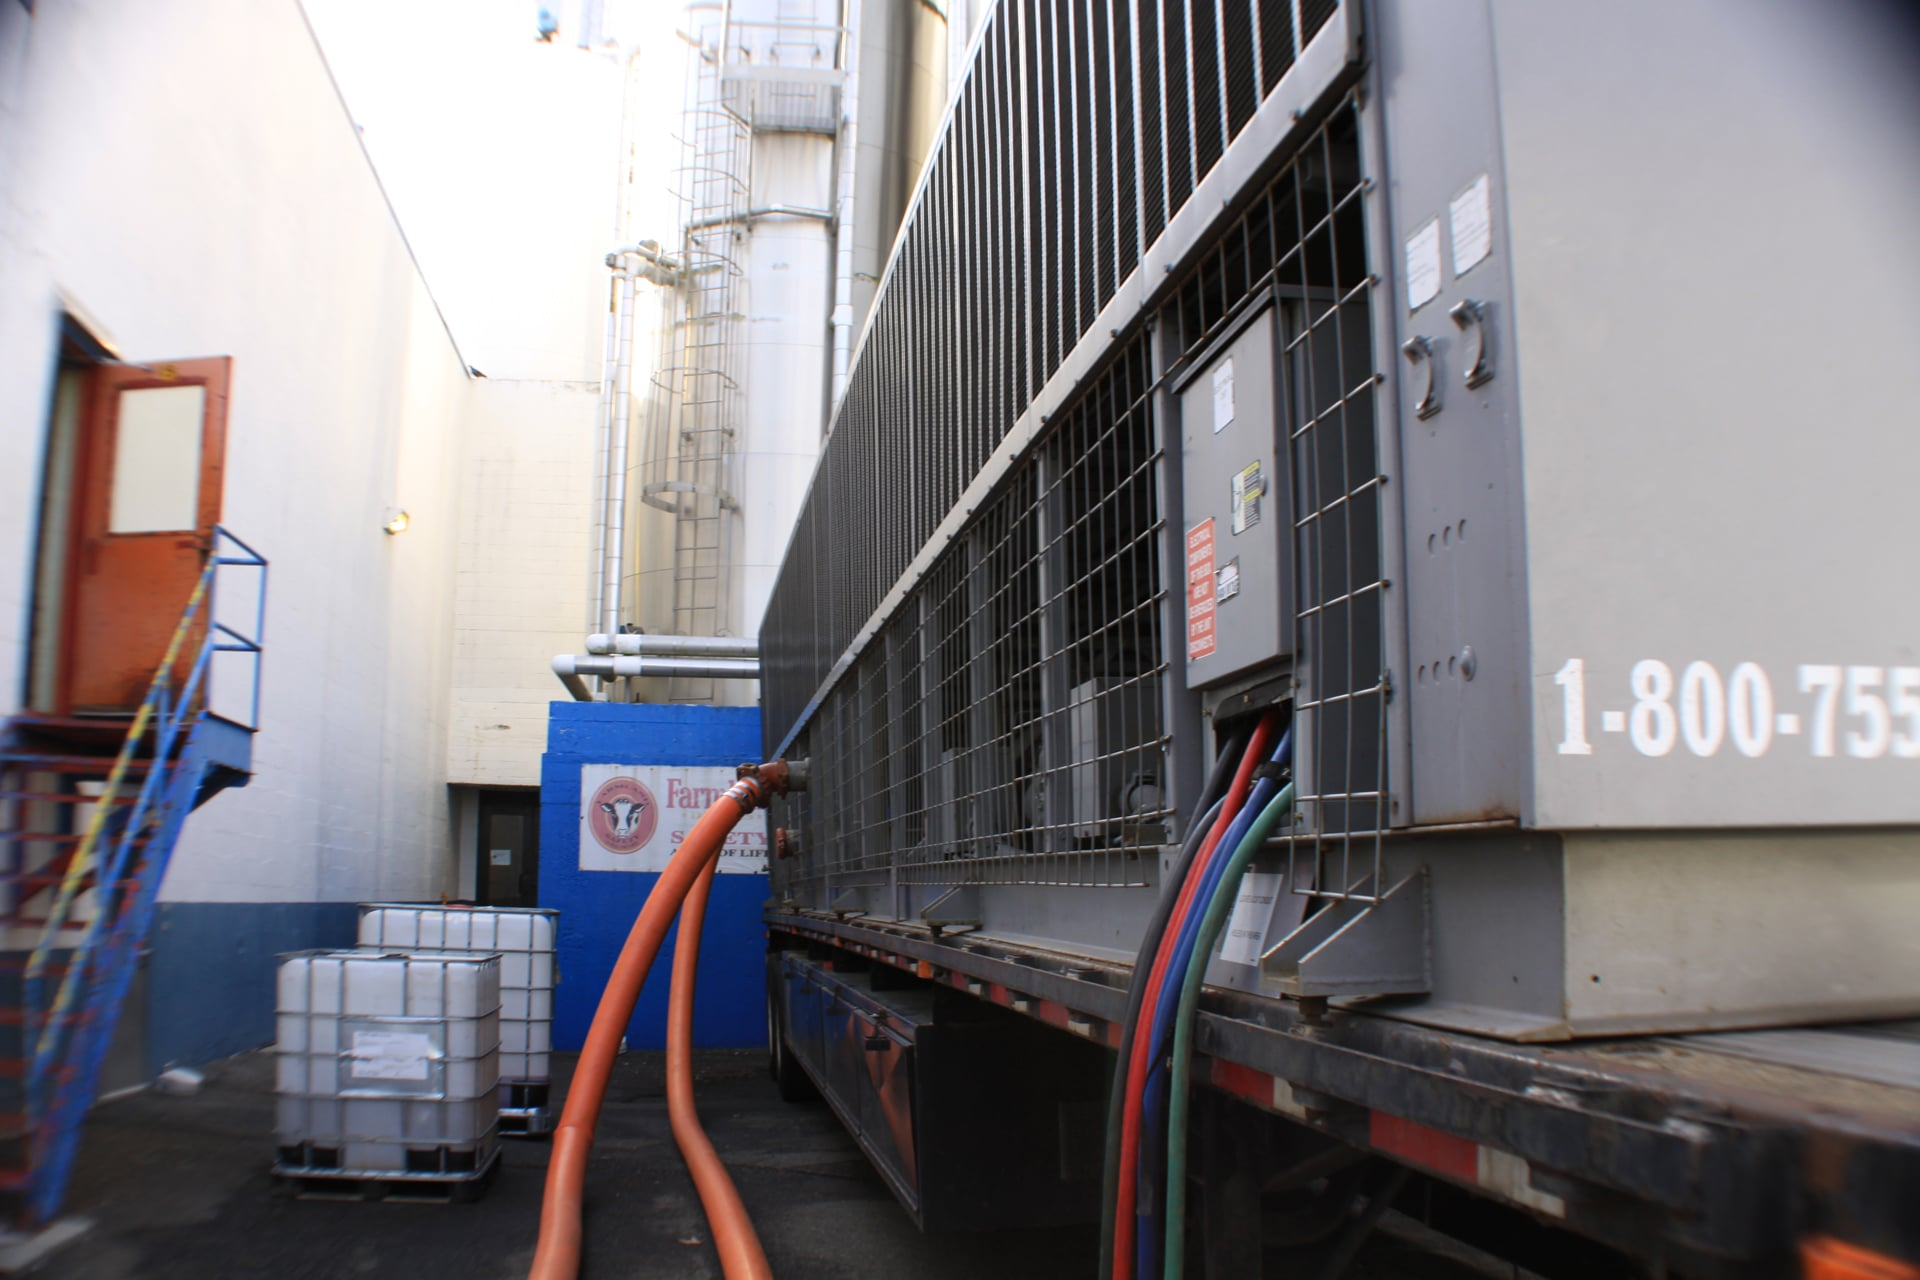 Temporary Chiller Tolland County CT, Air Cooled Chiller Rental Tolland County CT